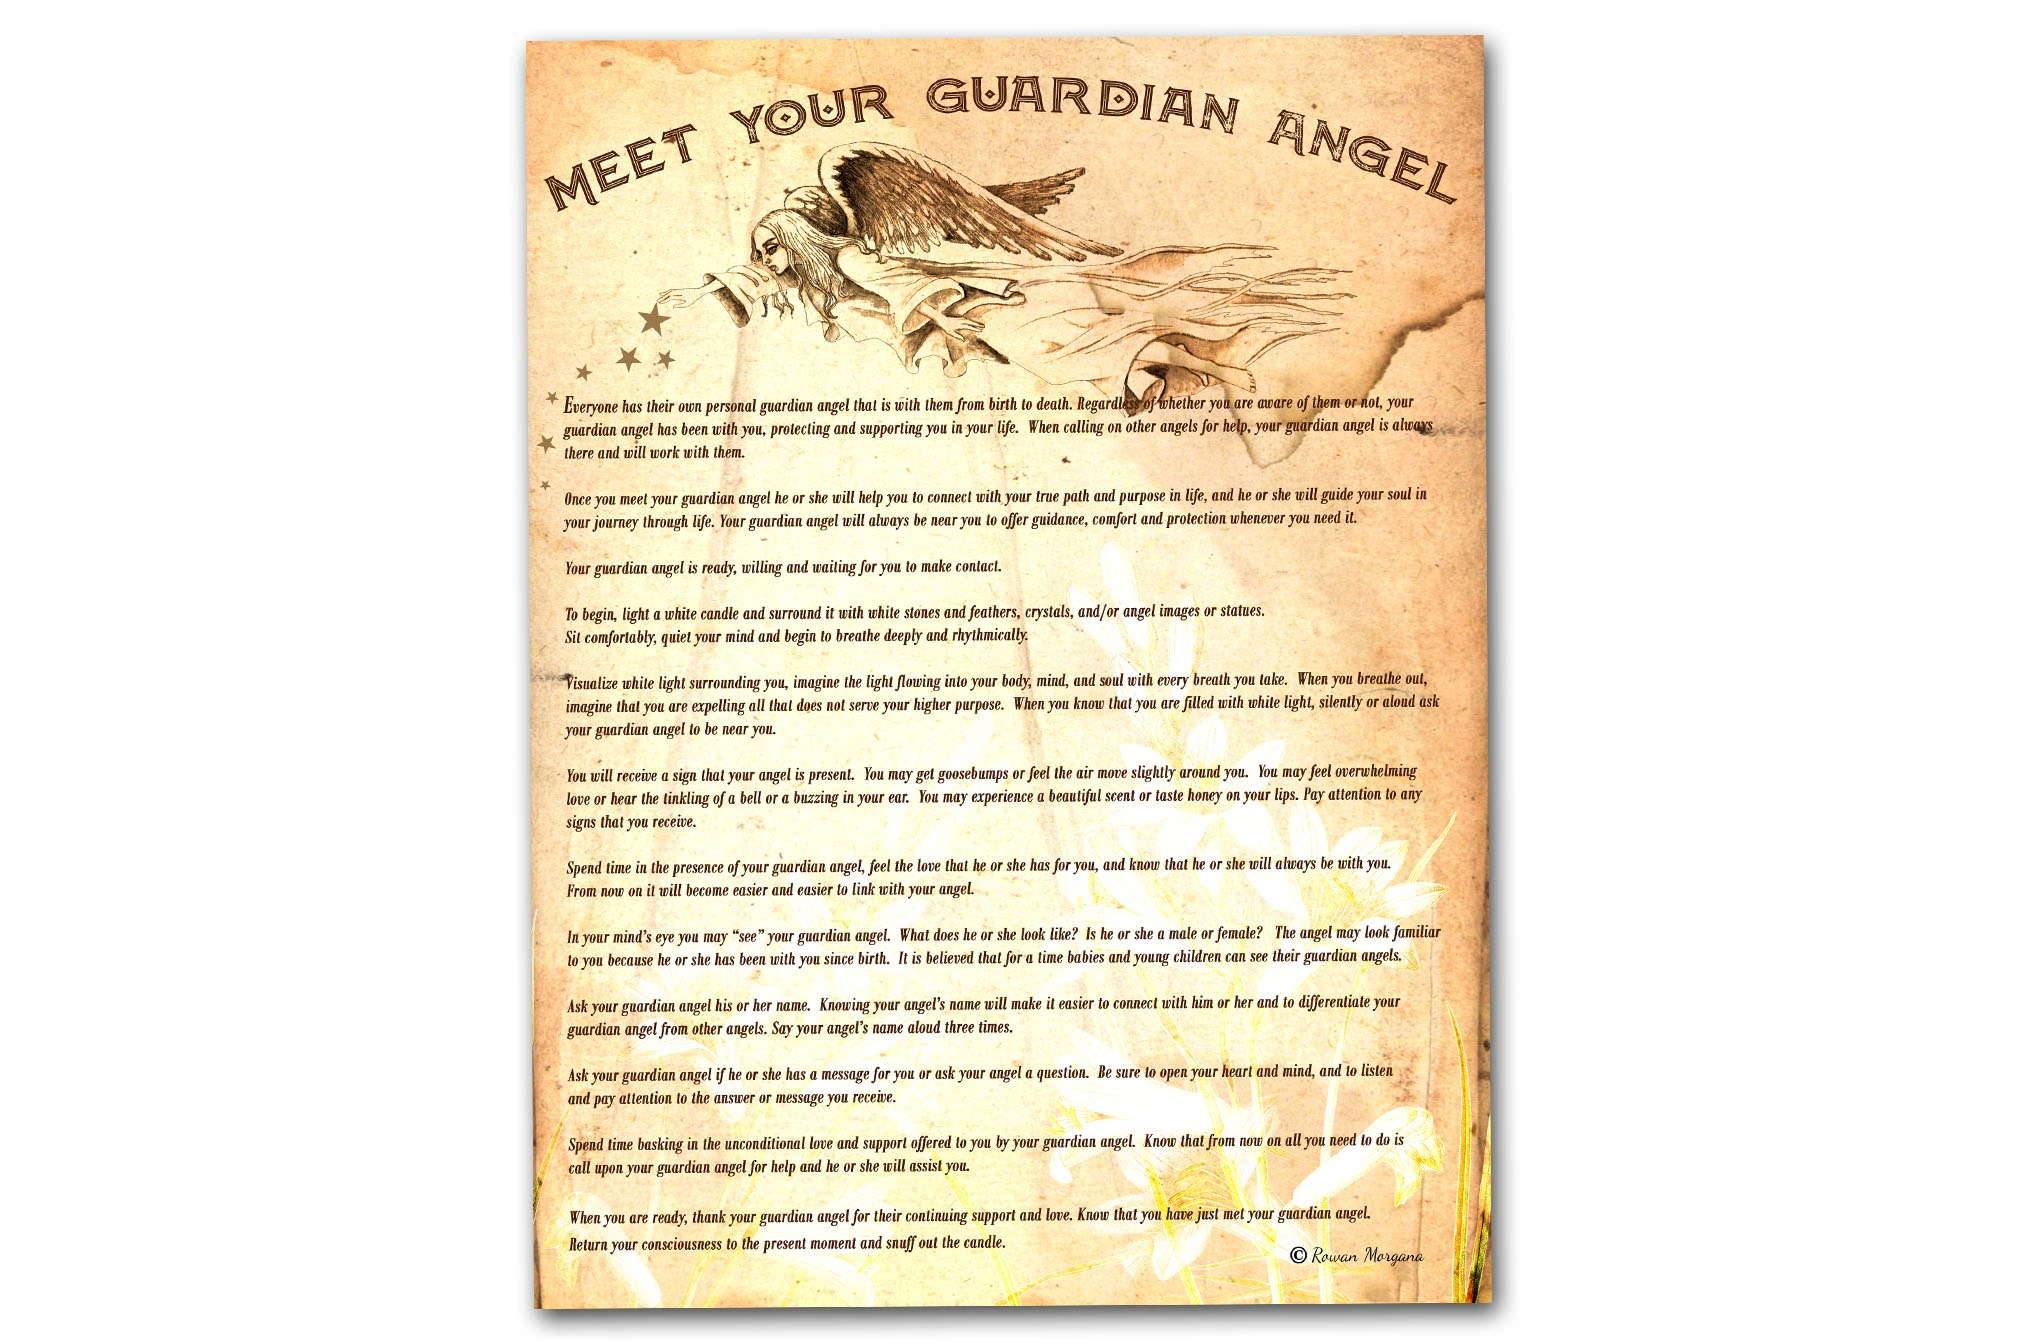 MEET Your GUARDIAN ANGEL RITUAL